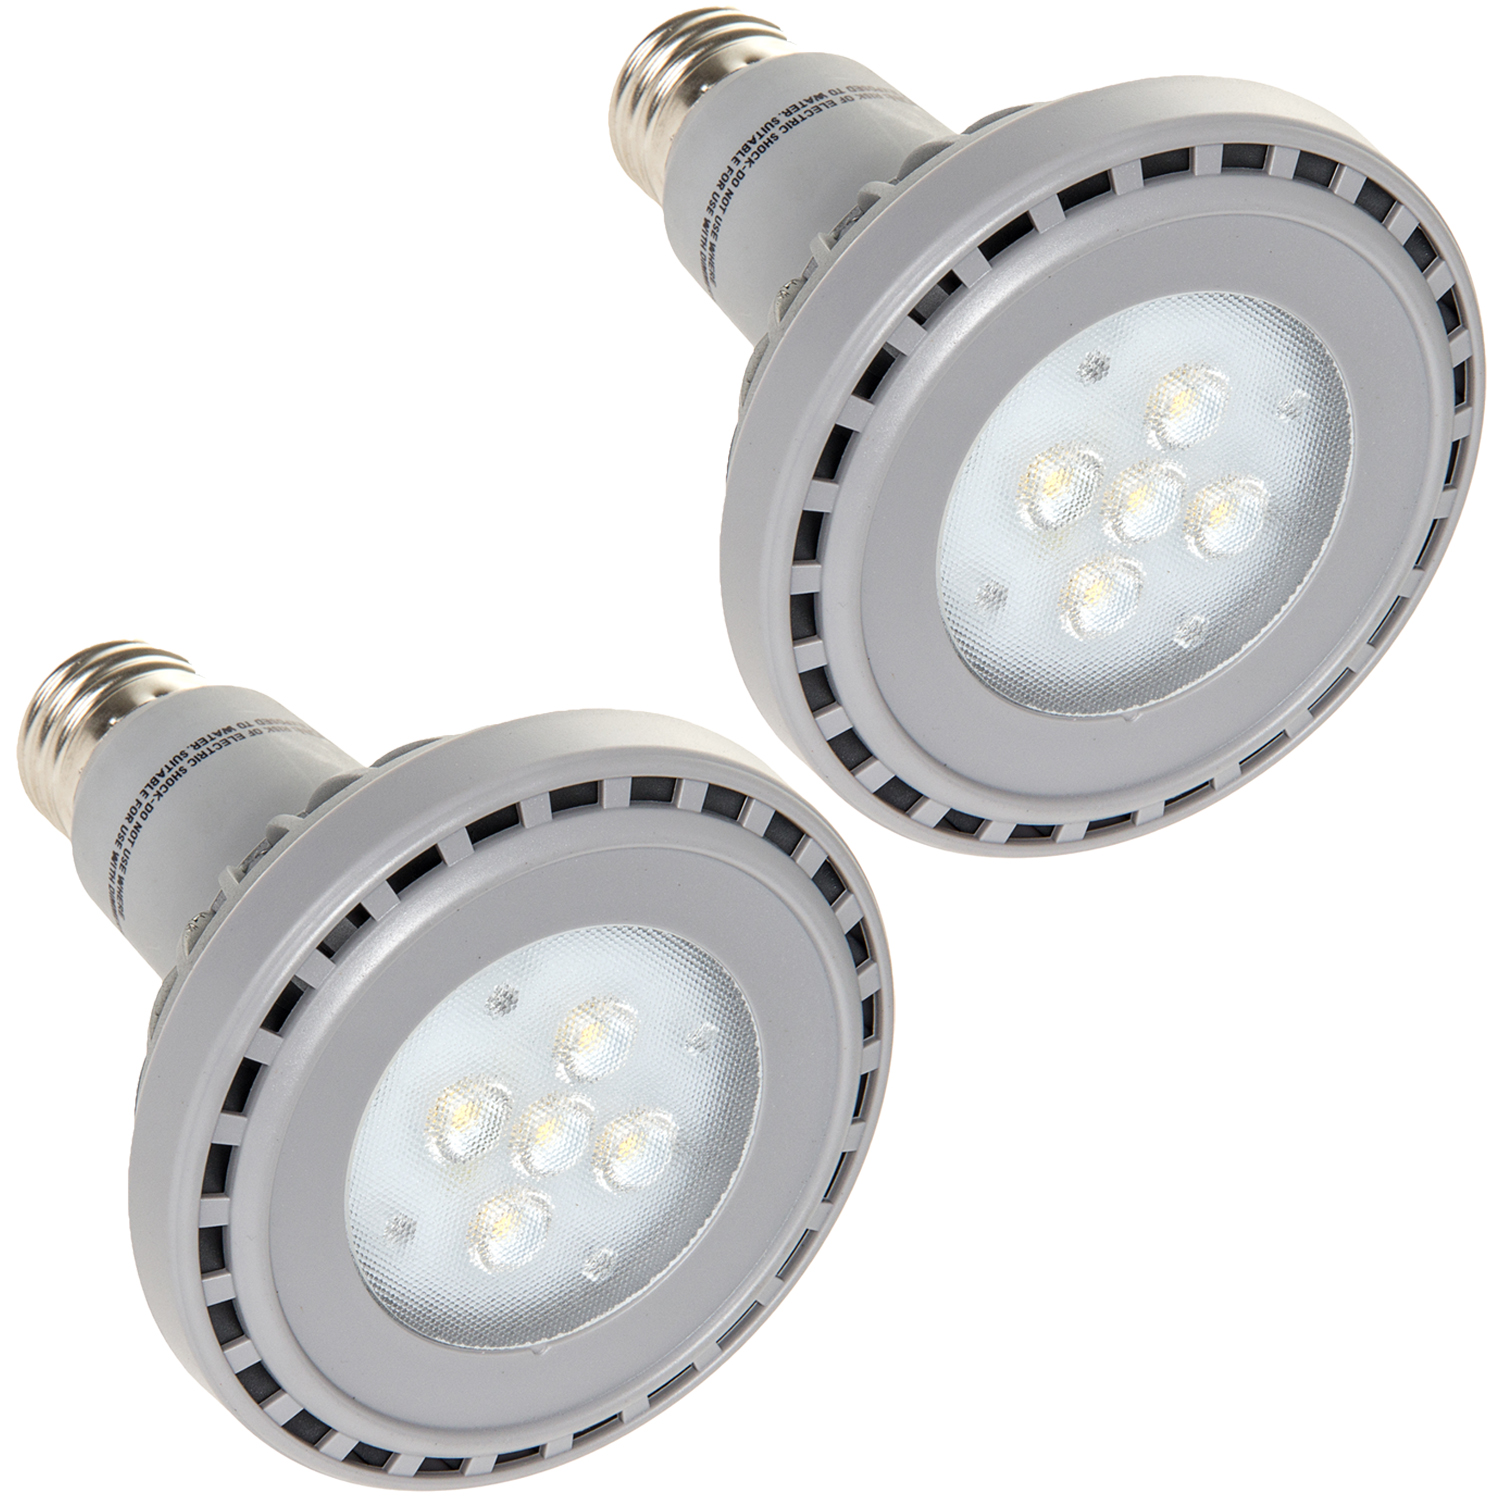 FUSION LAMPS NEW 3000K R30 Energy Efficient Indoor 10W LED Light Bulb (2 Pack)